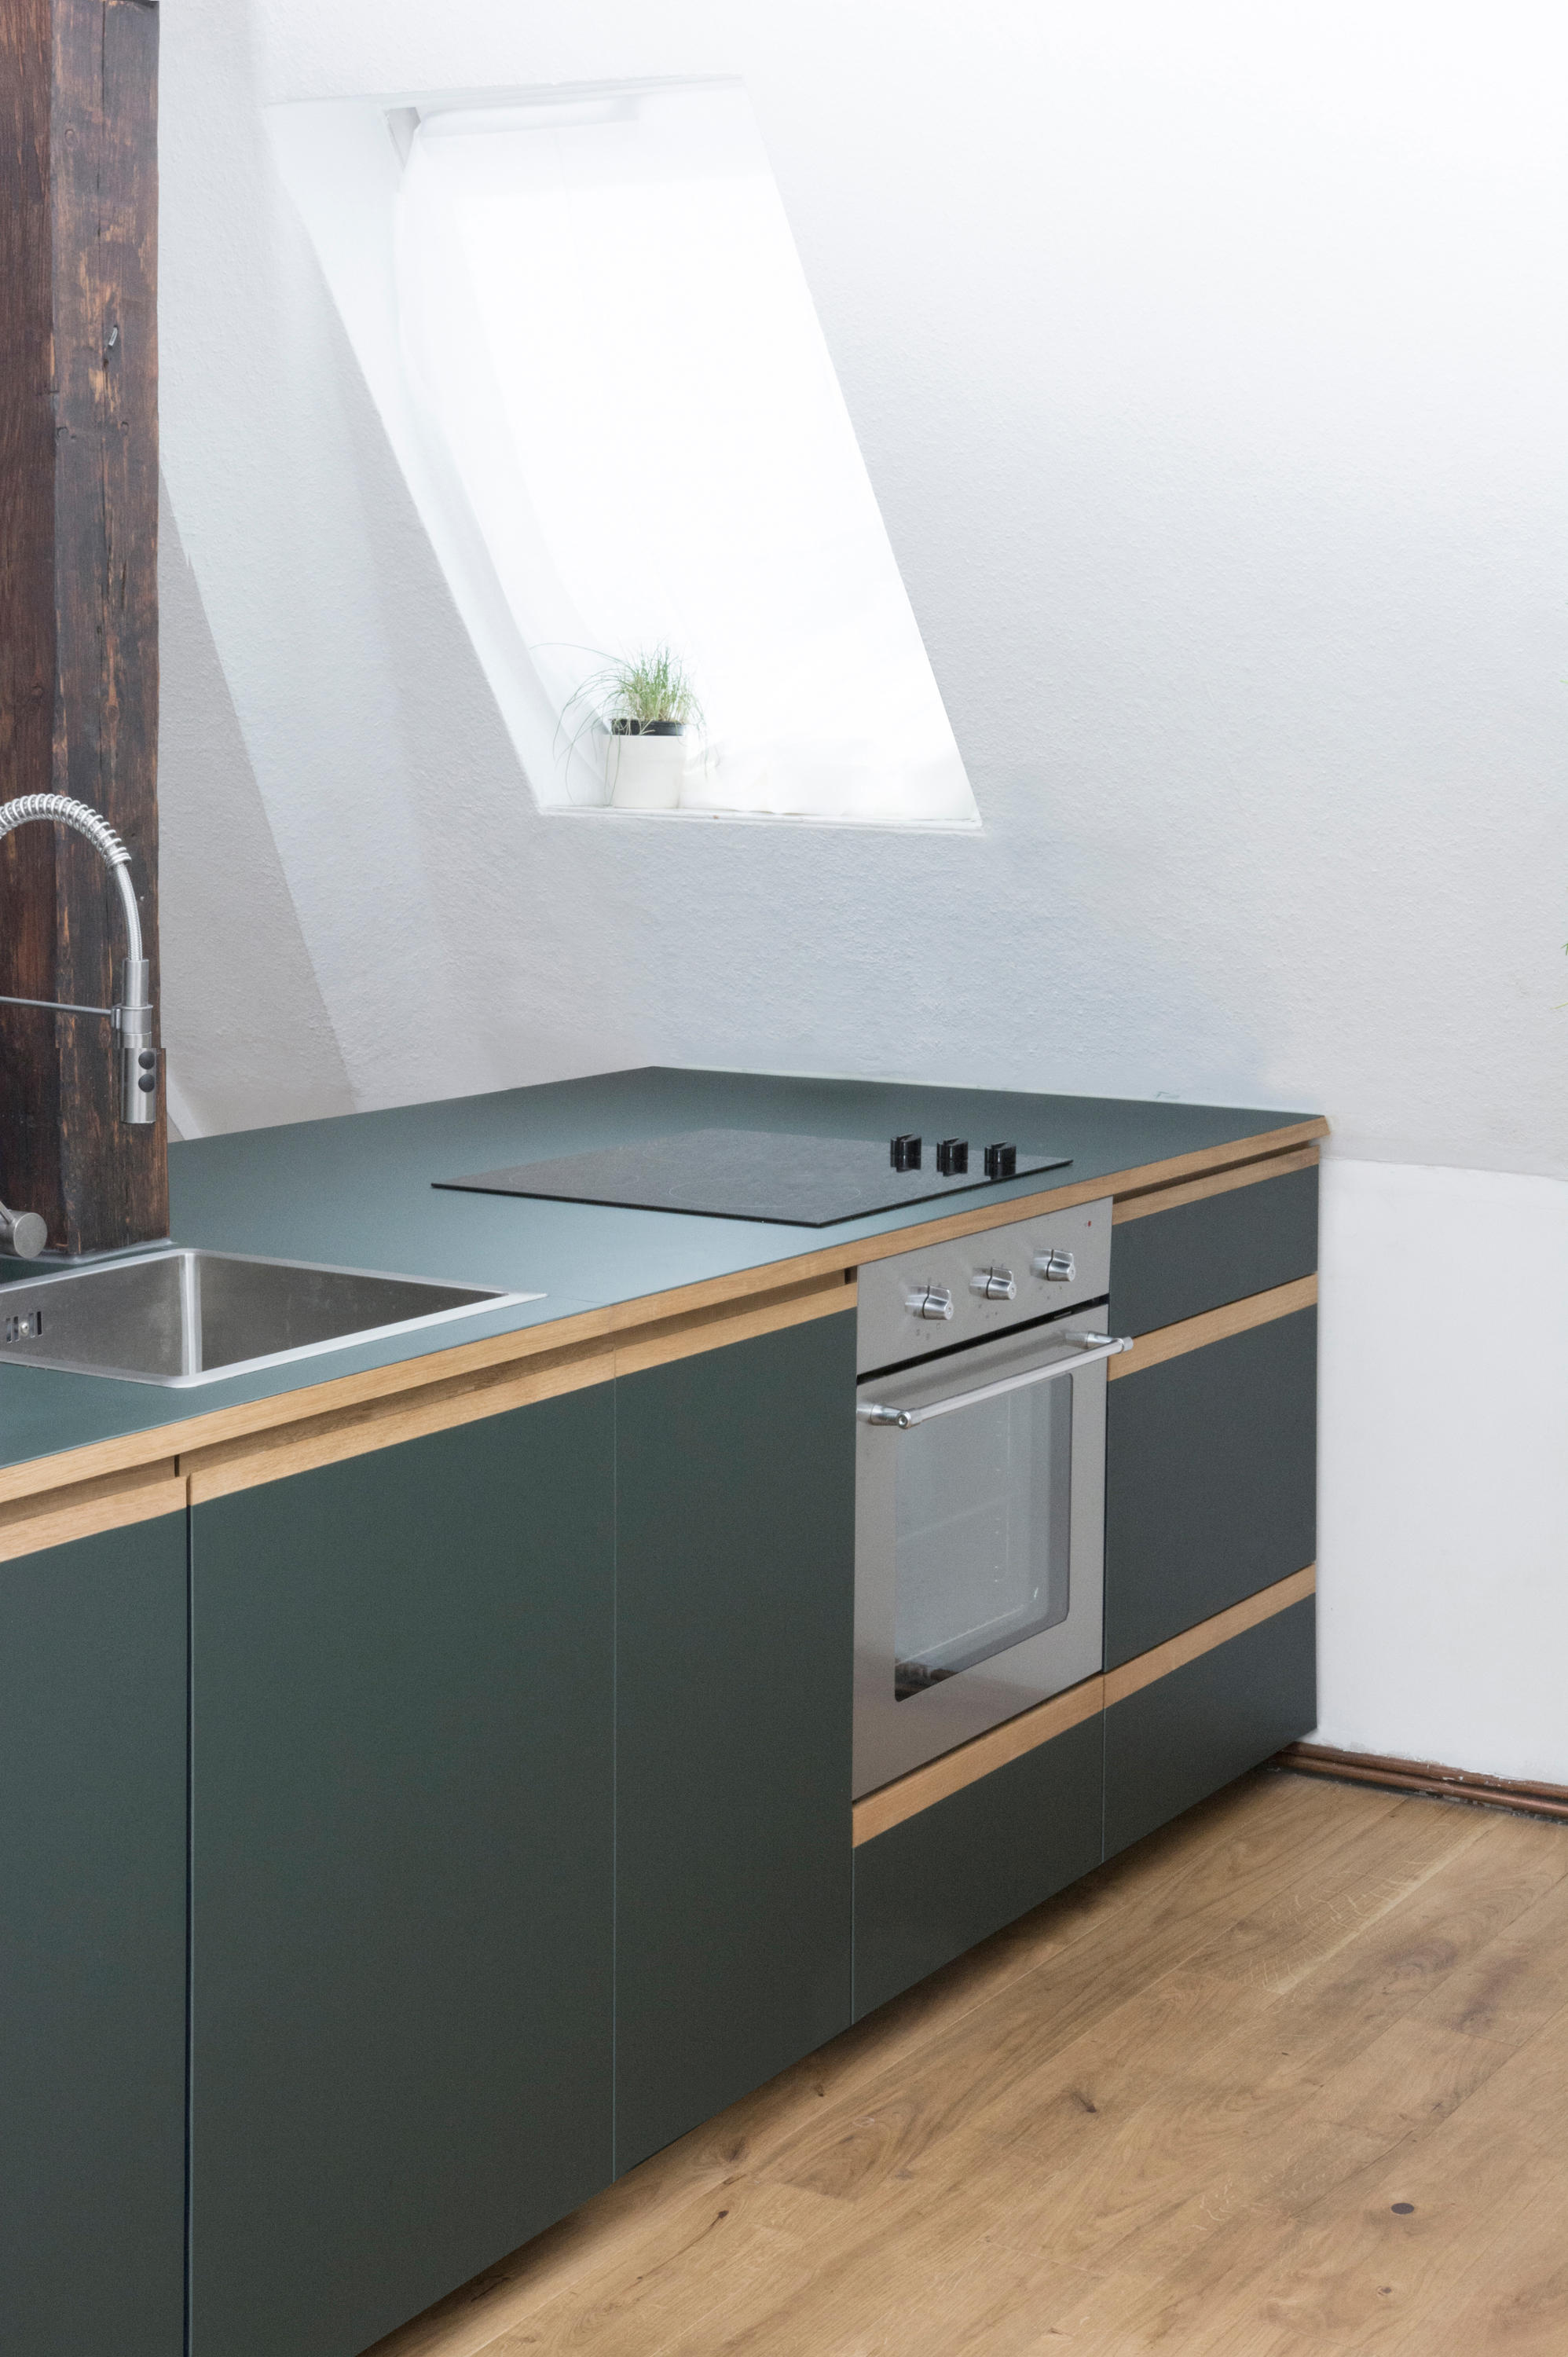 Ll Kitchen Fitted Kitchens From Bartmann Berlin Architonic